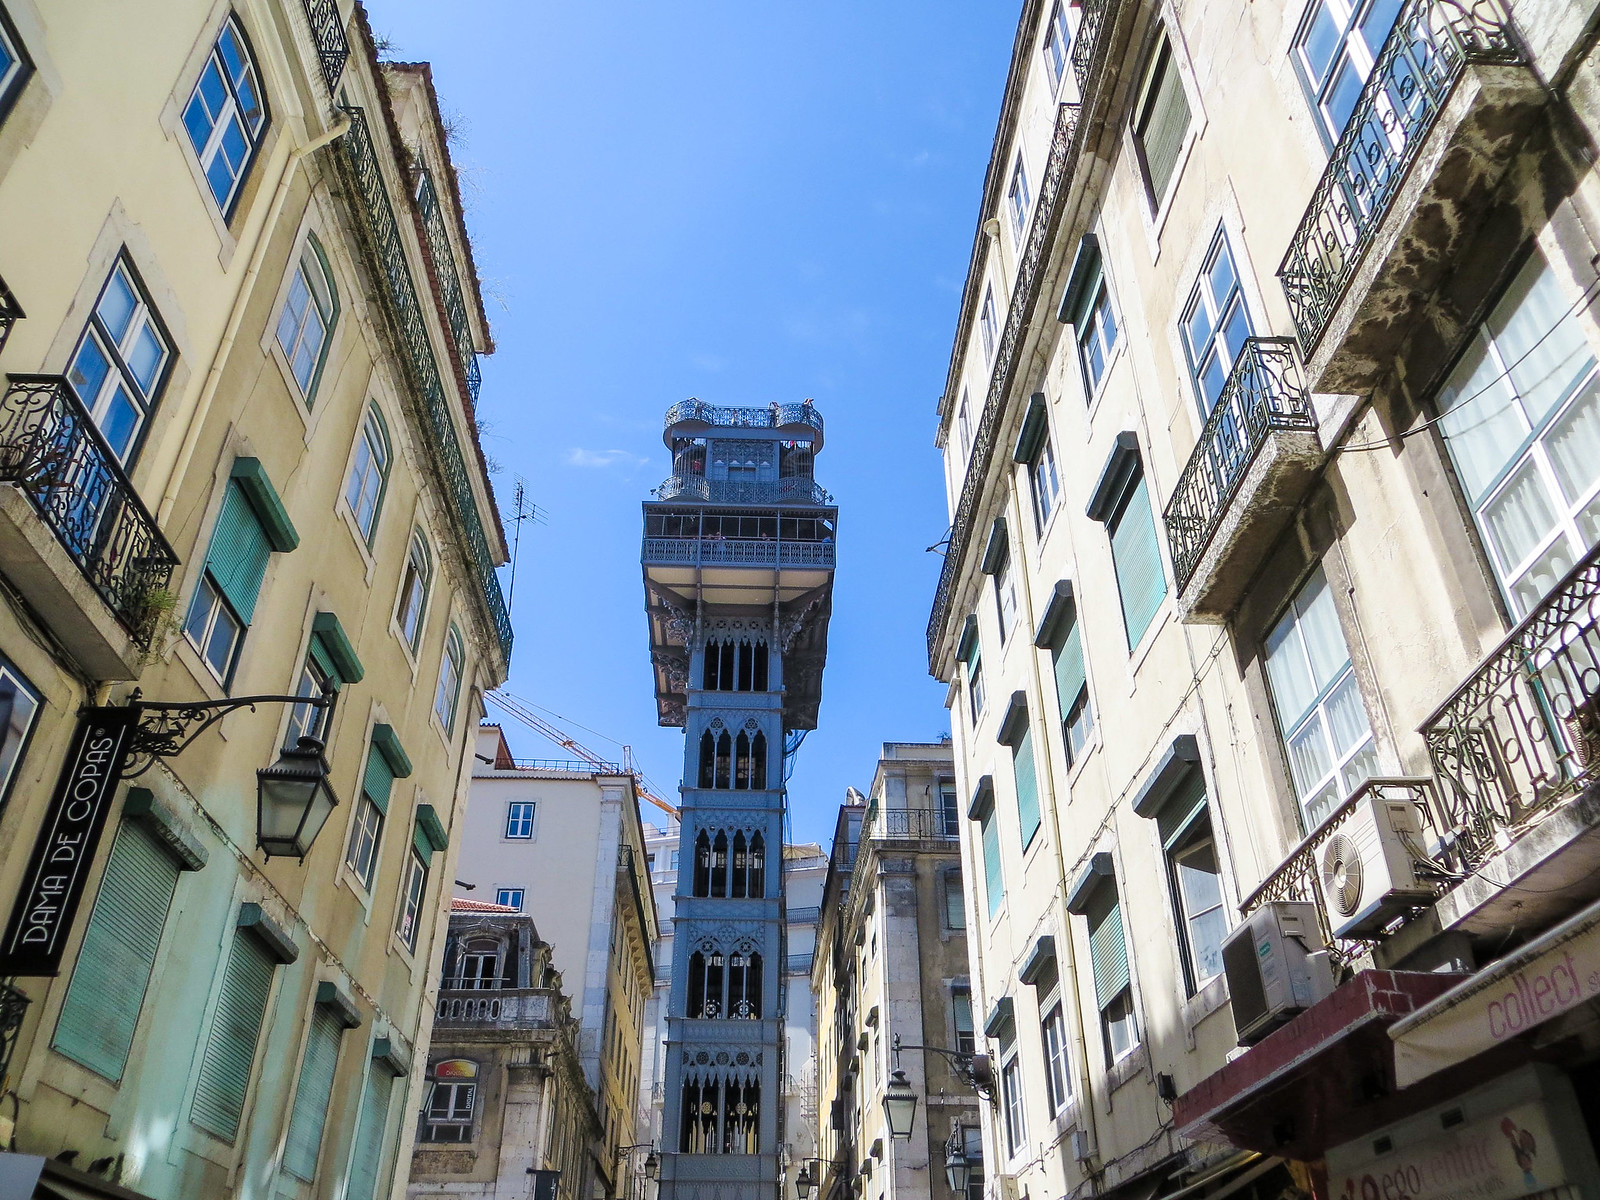 santa justa lift is among what to see in lisbon in 2 days